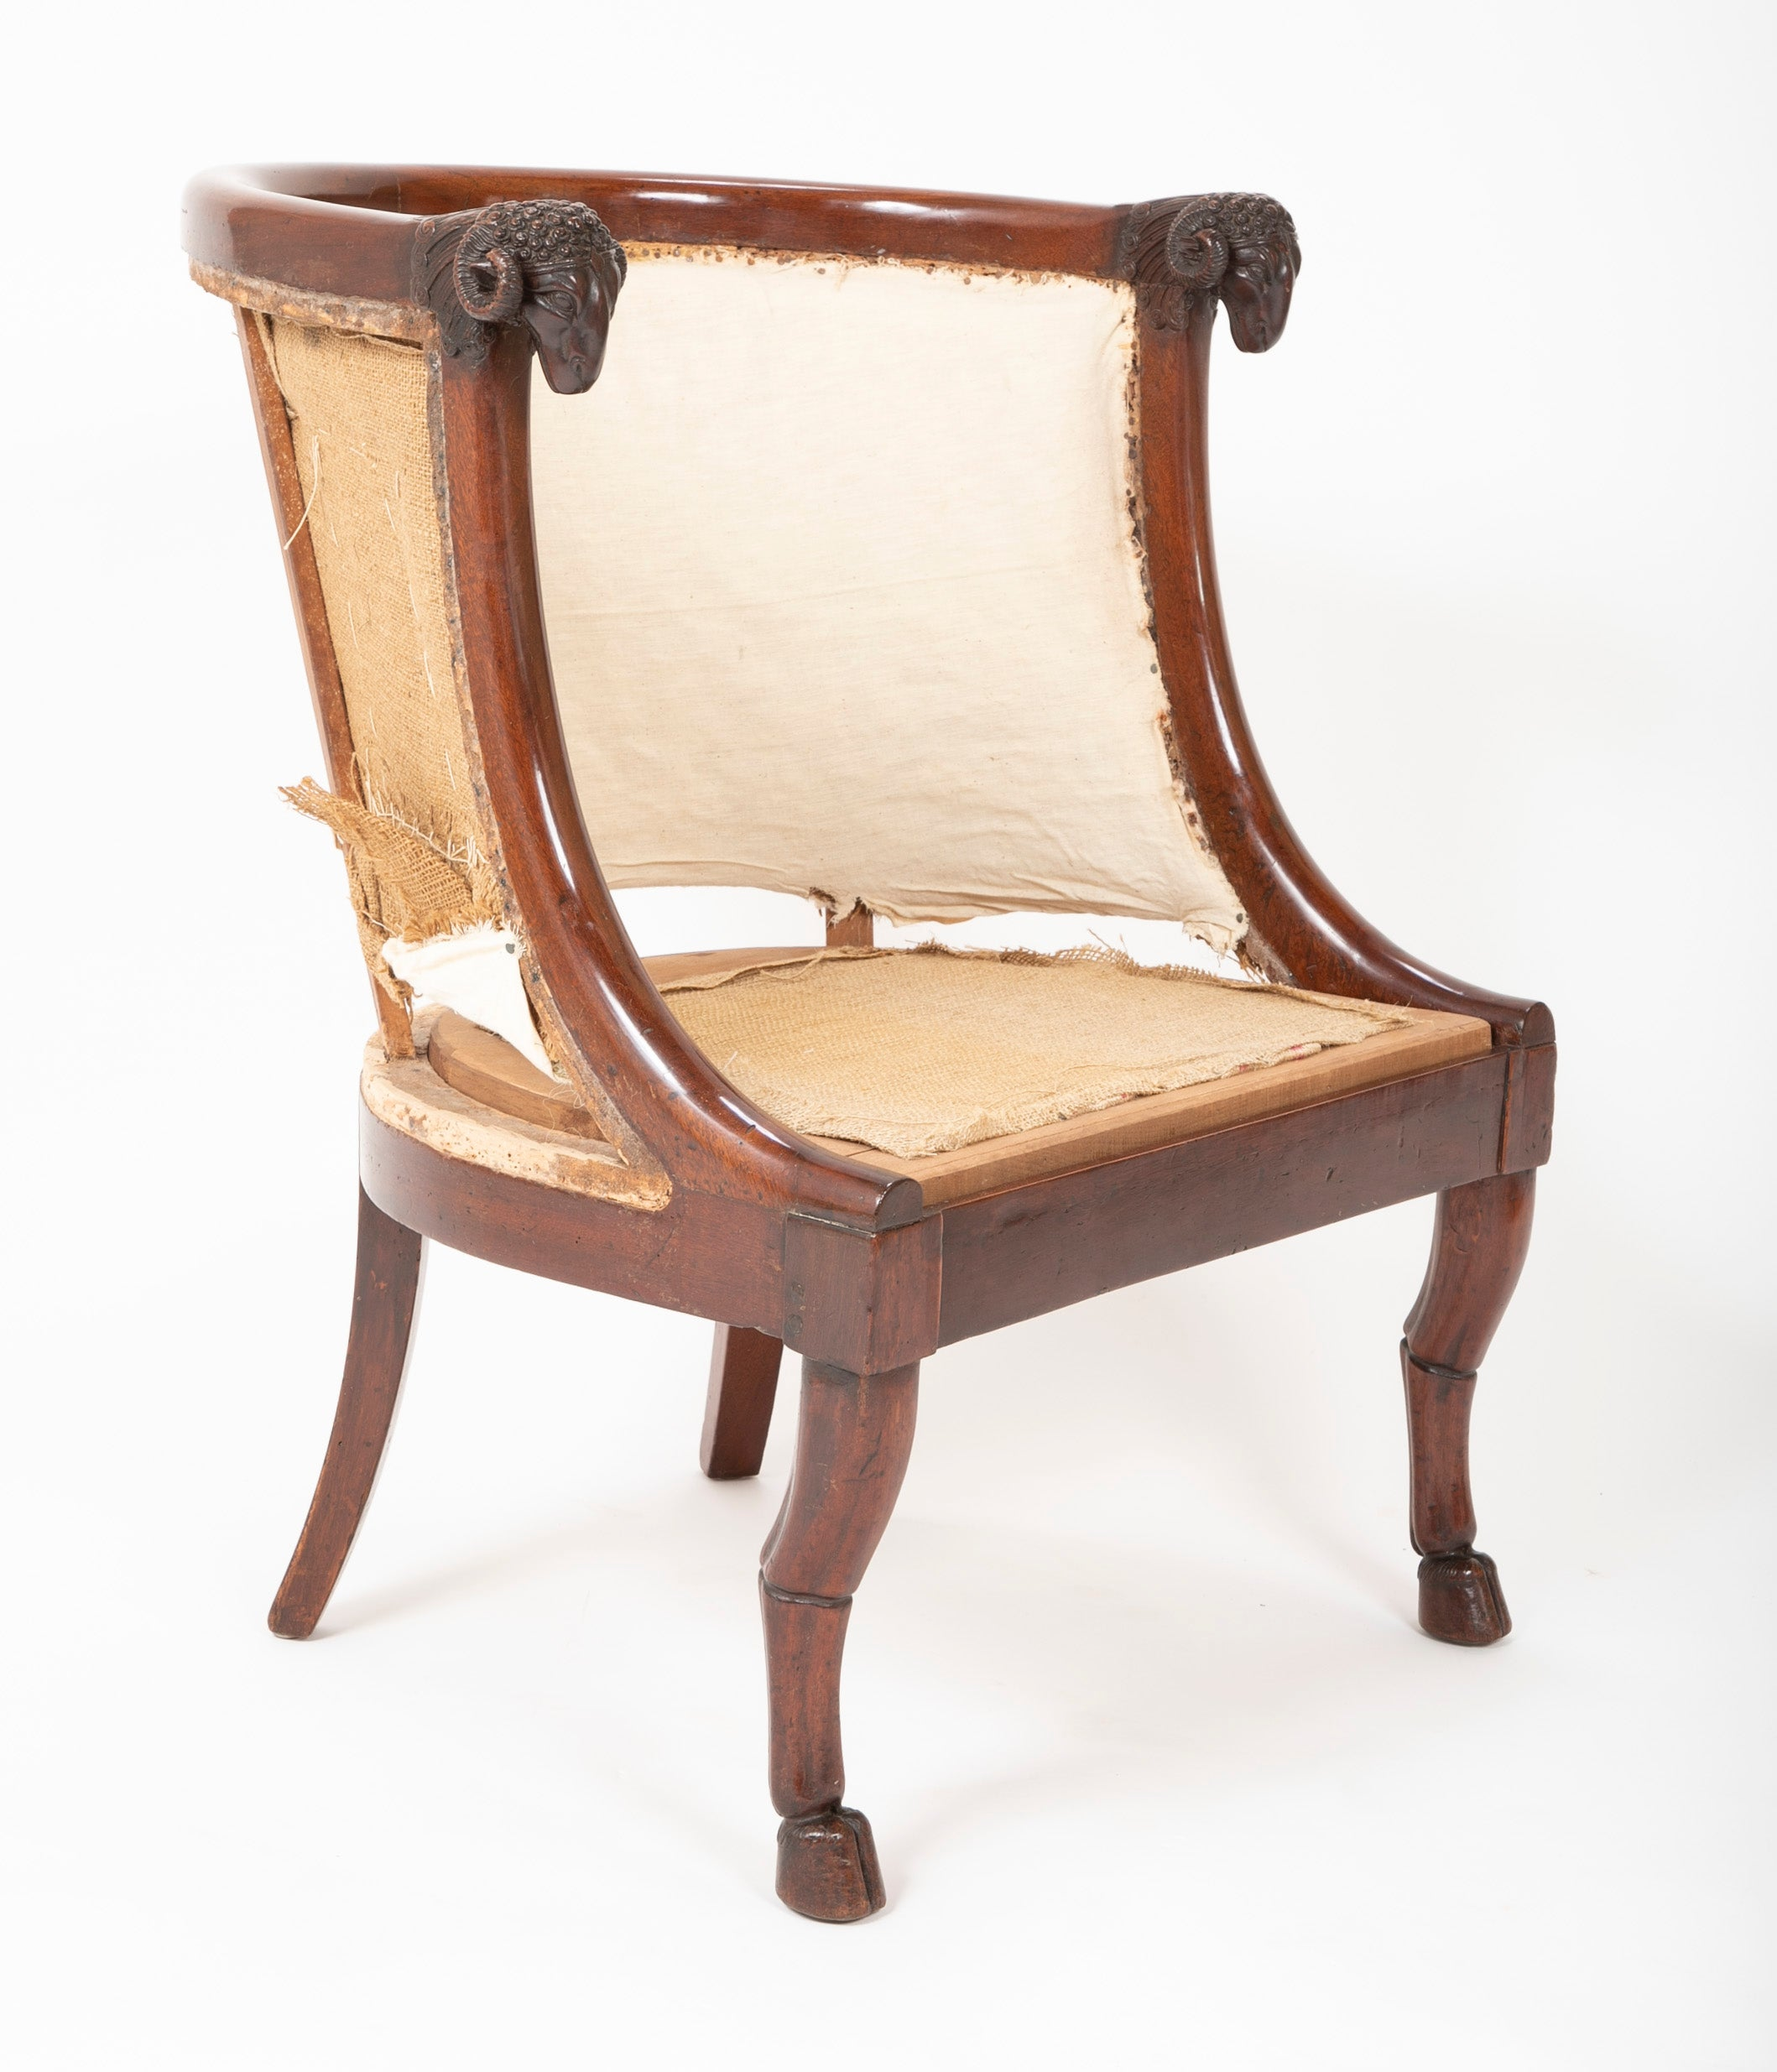 Very Fine Pair of French Empire Armchairs Attributed to Jacob Desmalter